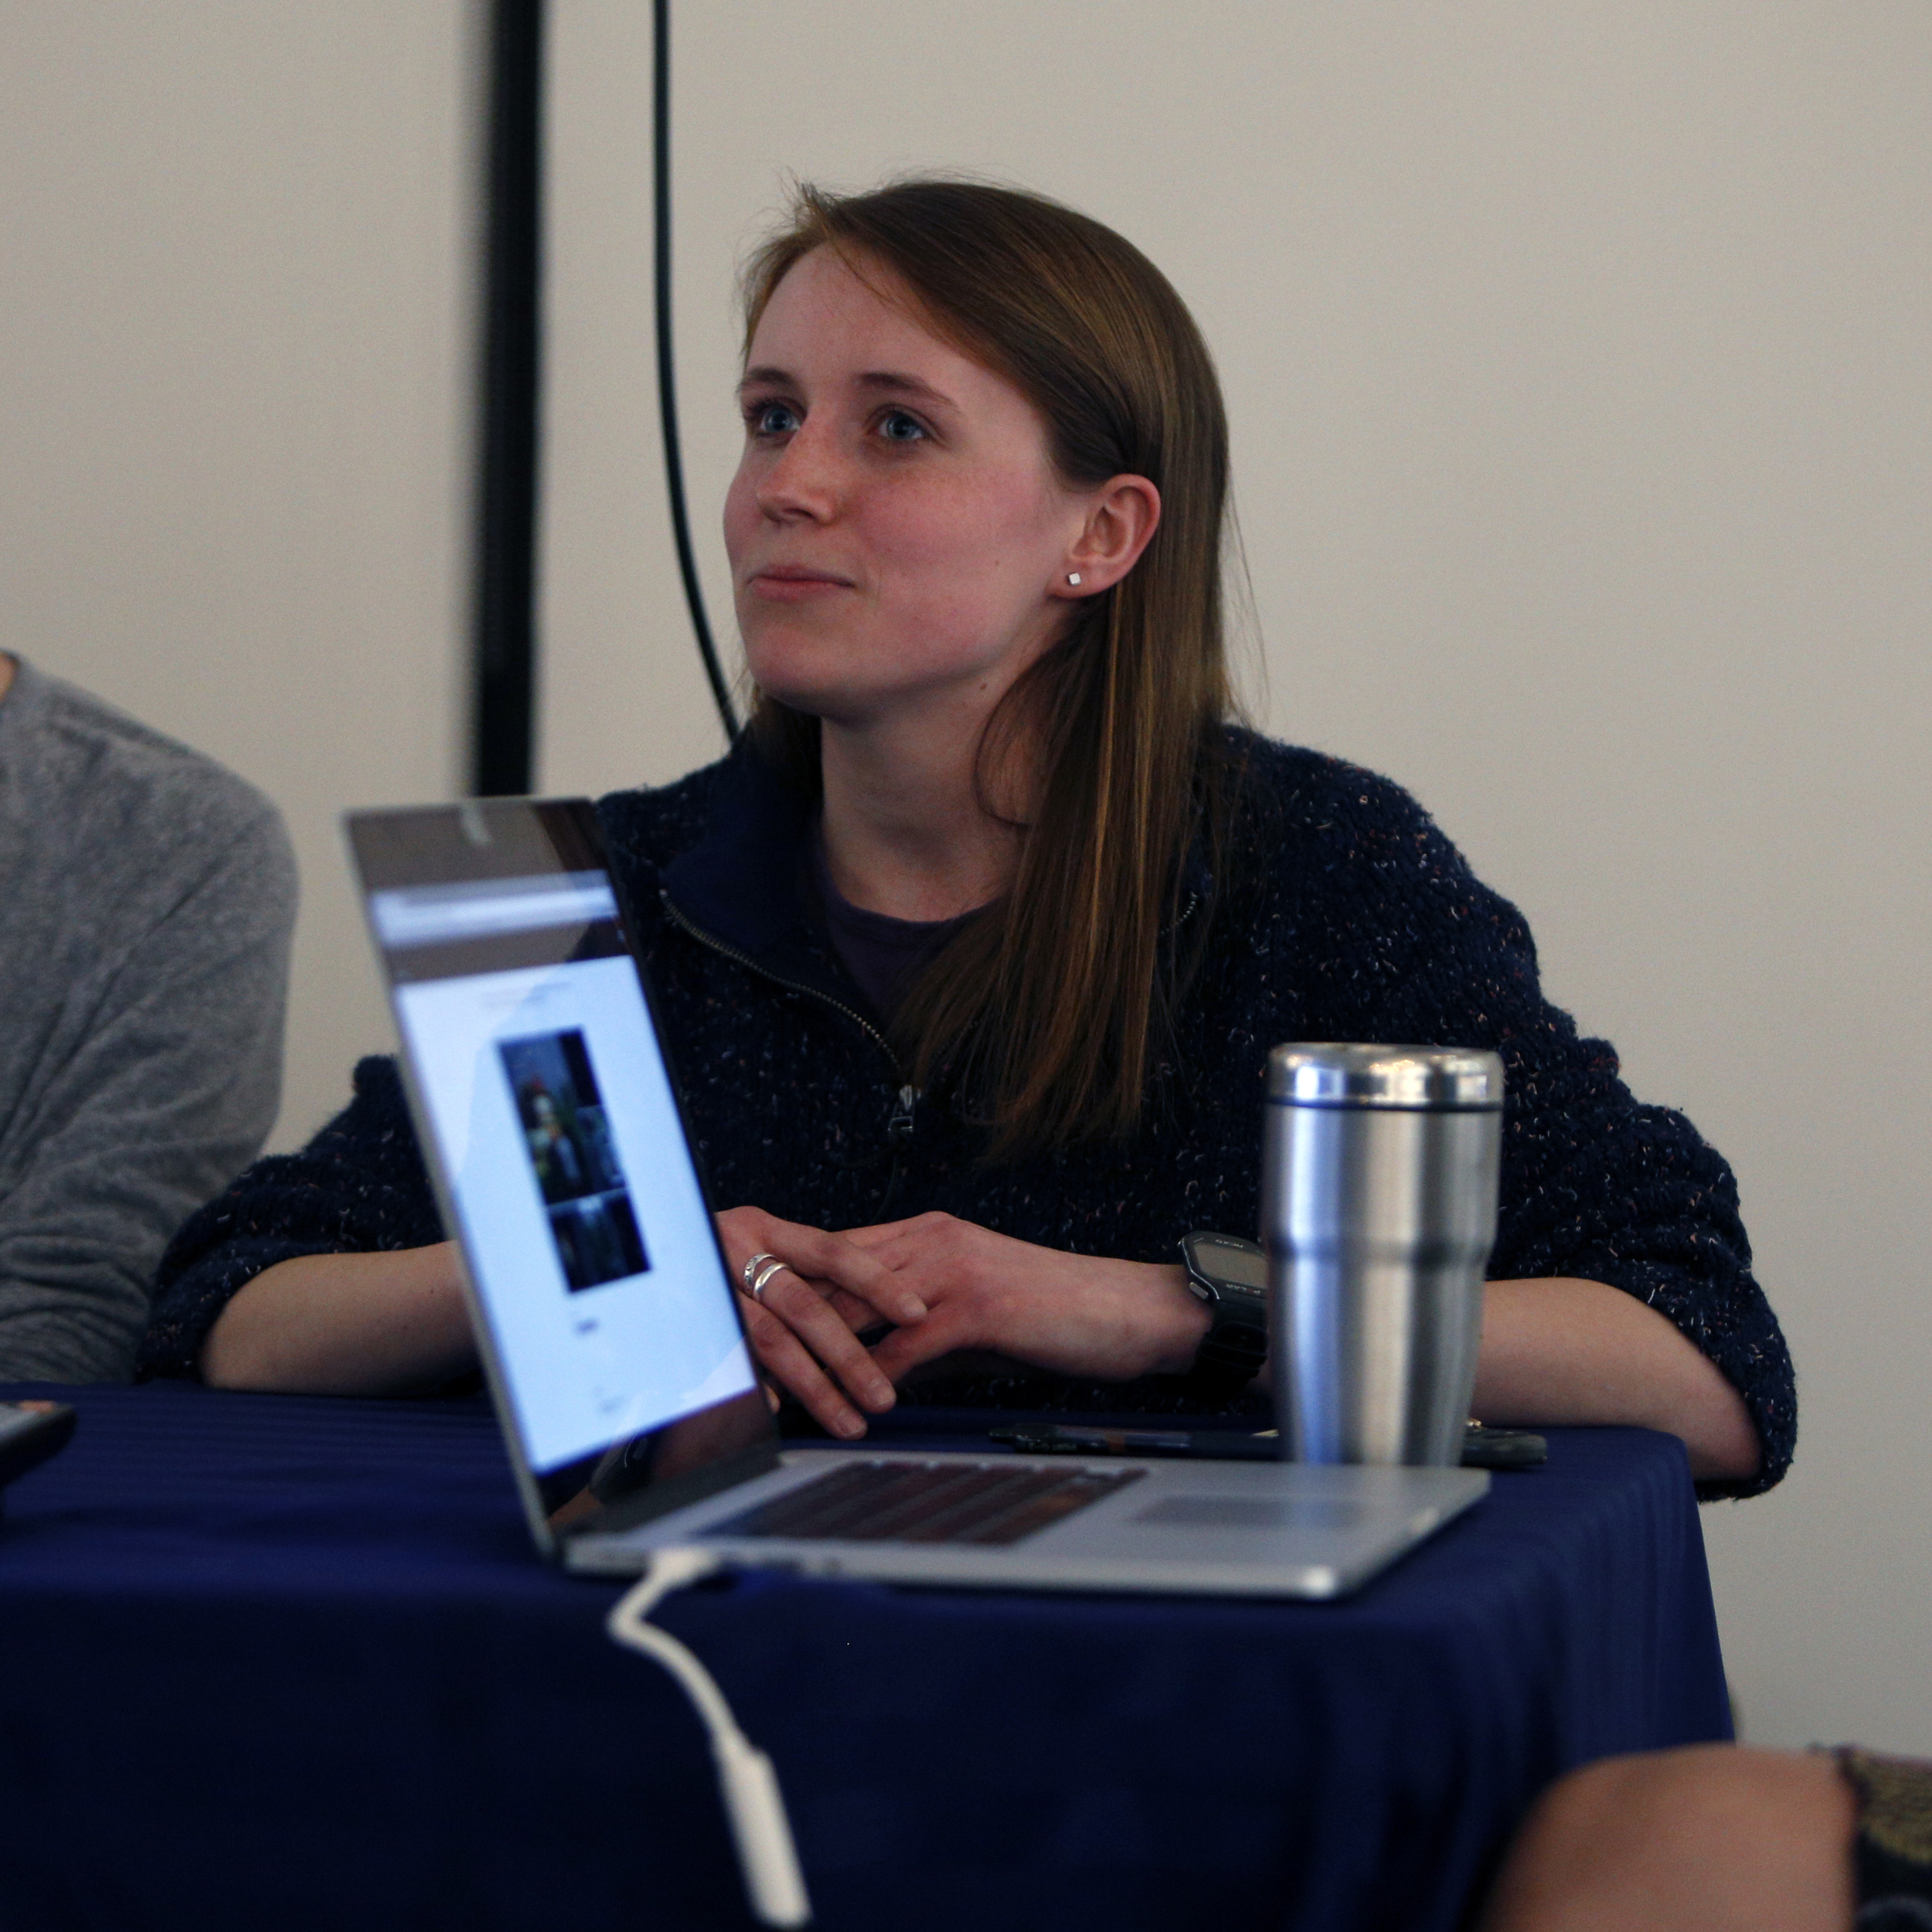 """I describe partof the process of developing""""Everything is Good."""" Thankfully, my face didn't get any redder than picturedduring the discussion. Photo credit: Tom Brenner"""